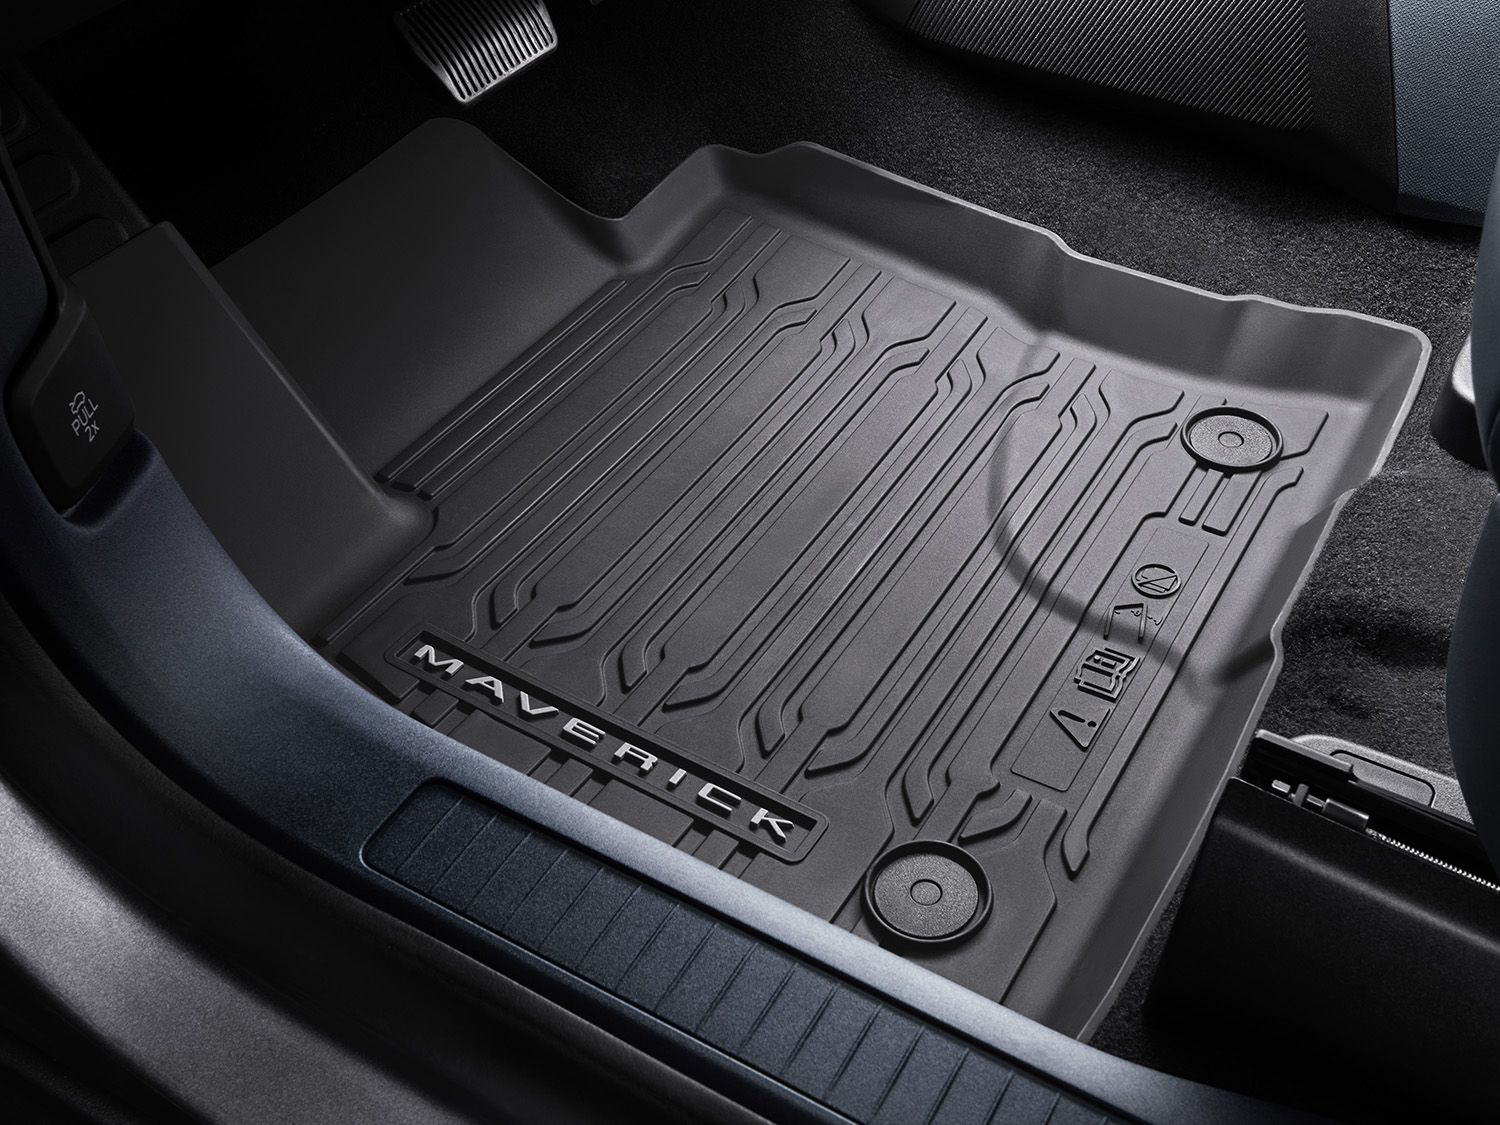 2022 Maverick Floor Liners - All-Weather Tray Style, Set, Crew Cab - GAS.jpg